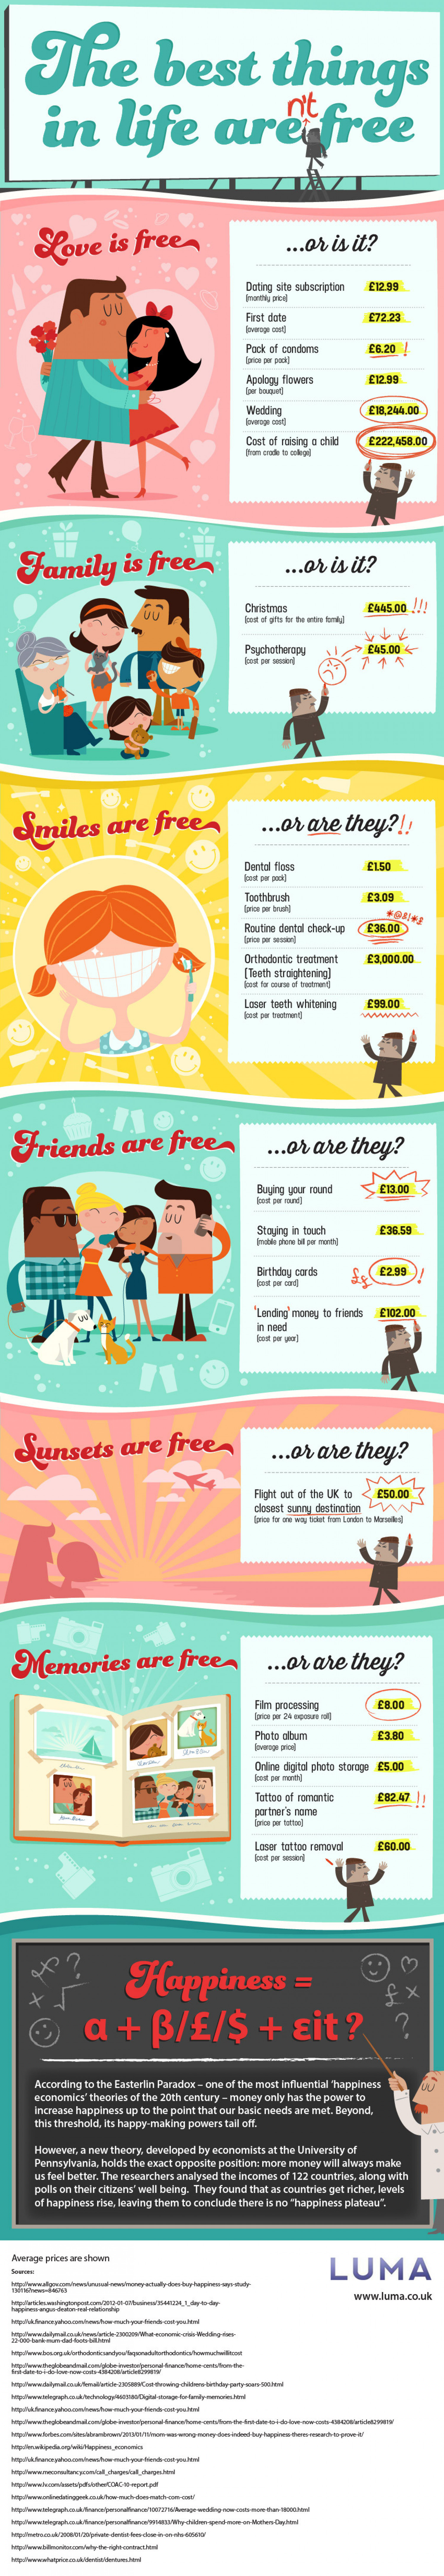 The Best Things in Life Aren't Free Infographic